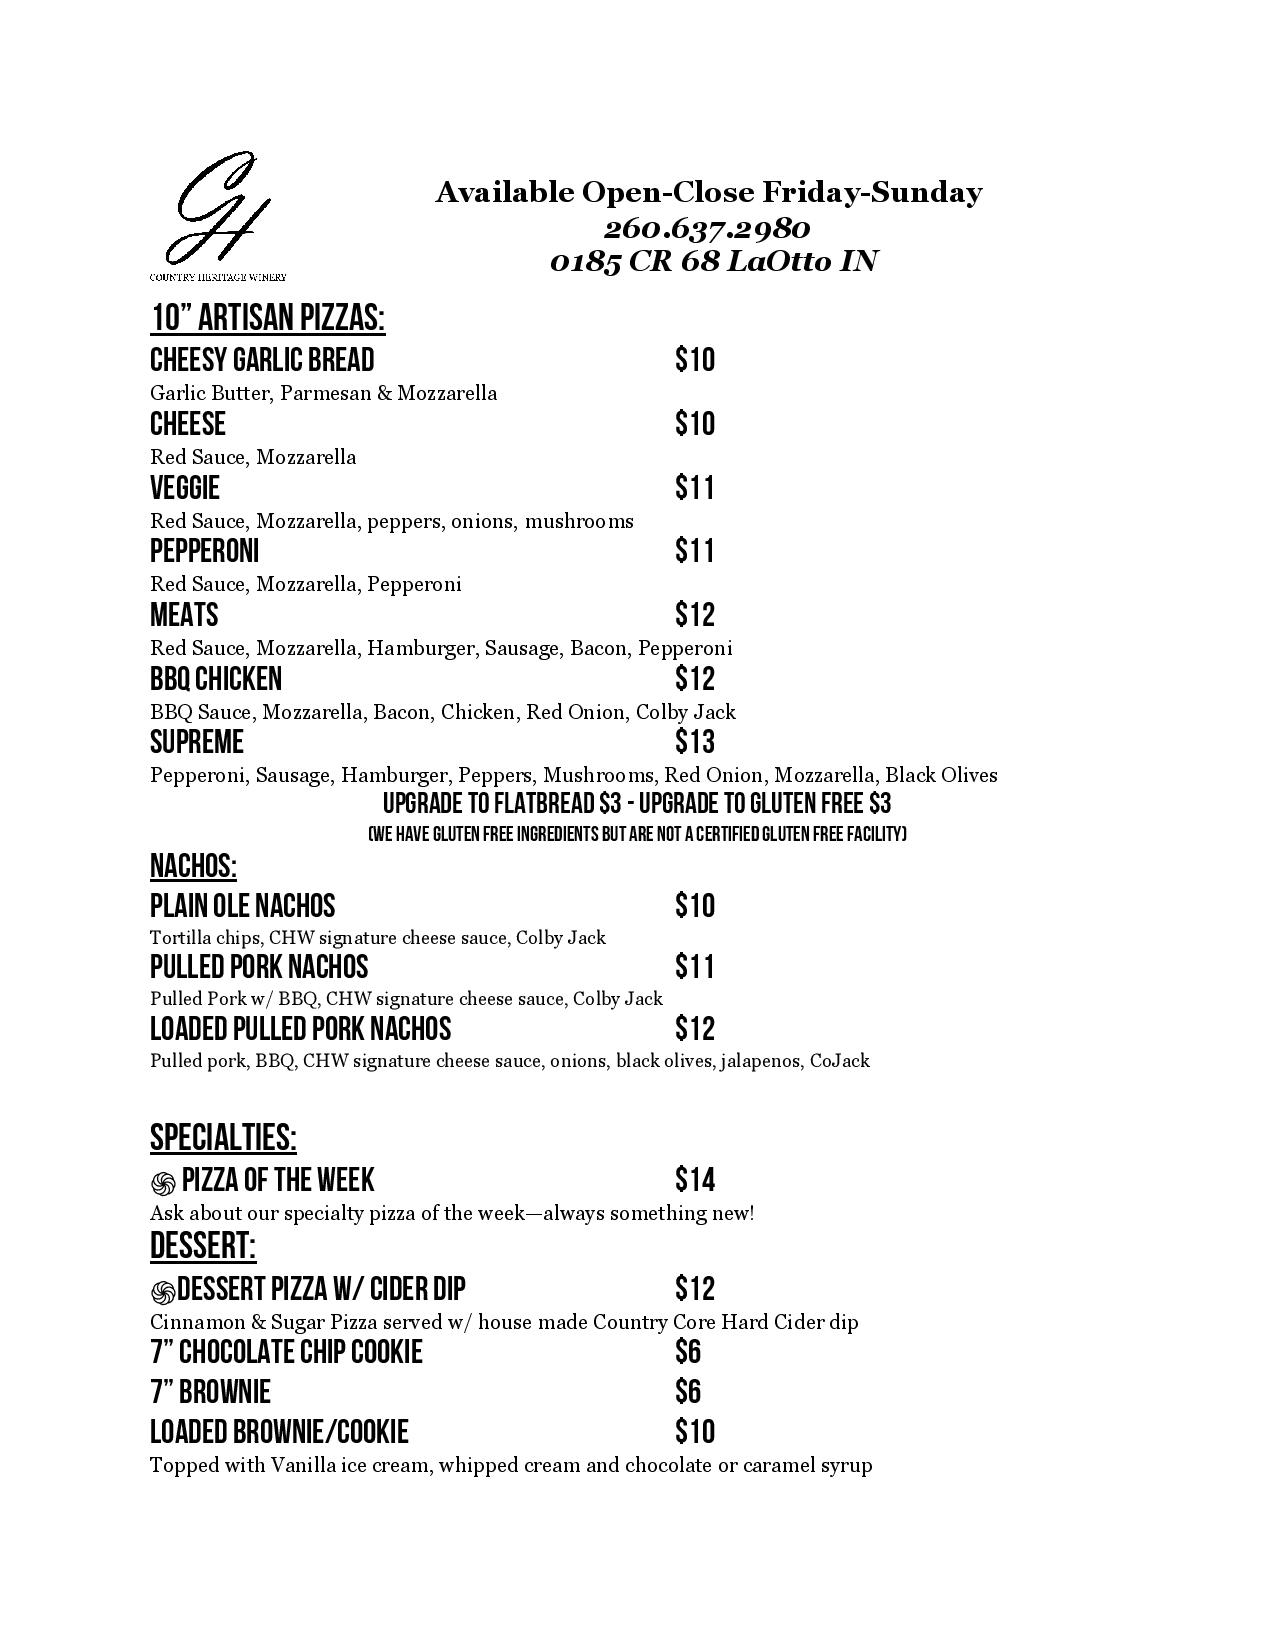 menu of food items available for purchase